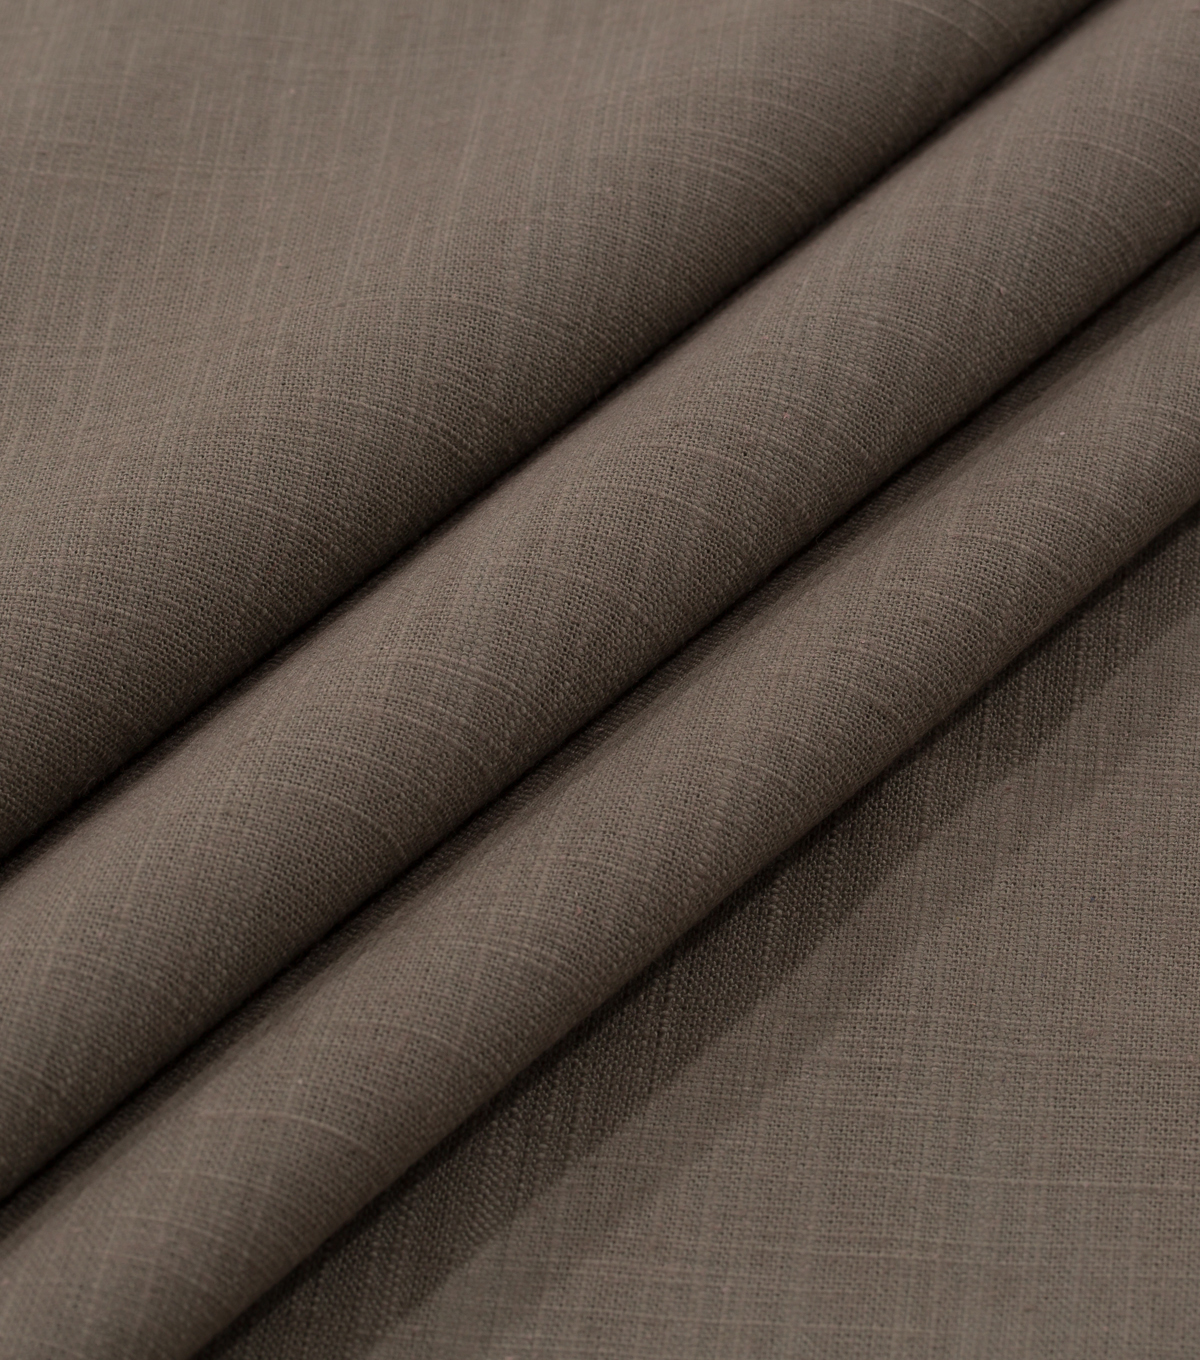 Robert Allen @ Home Lightweight Decor Fabric 54\u0022-Slubbed Weave Truffle